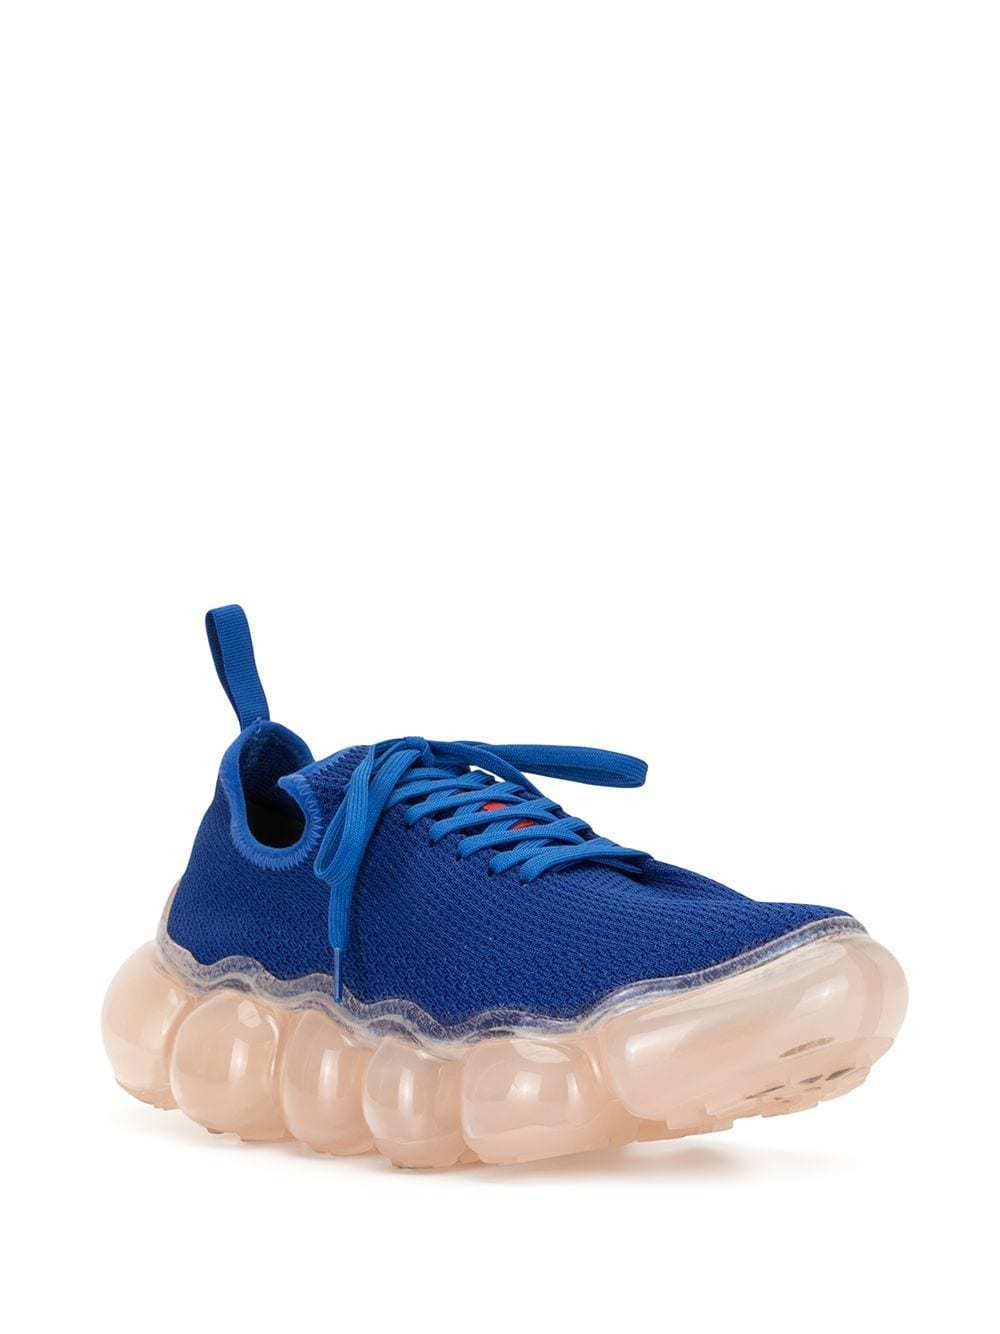 shop walter van beirendonck shoes